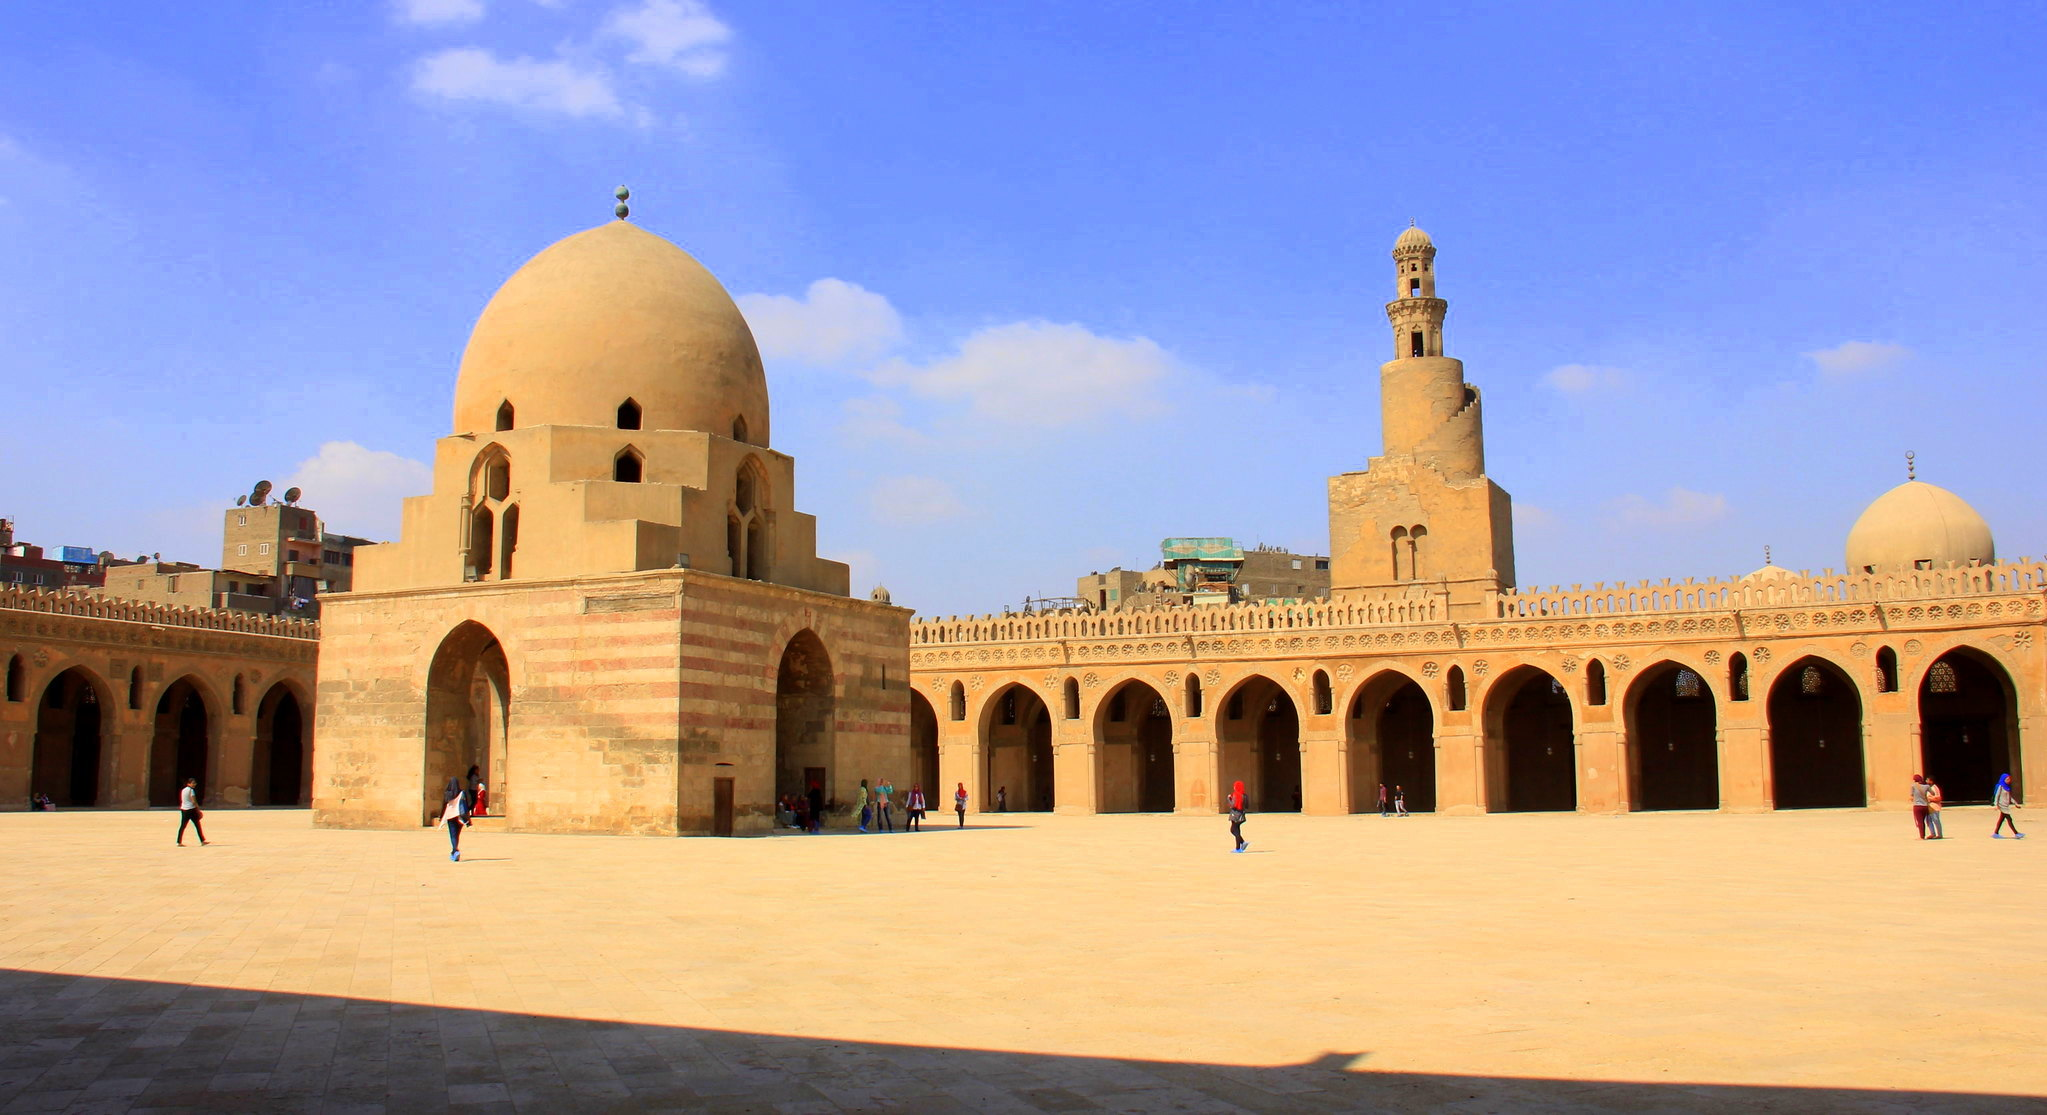 This is the Ibn Tulun Mosque of Cairo